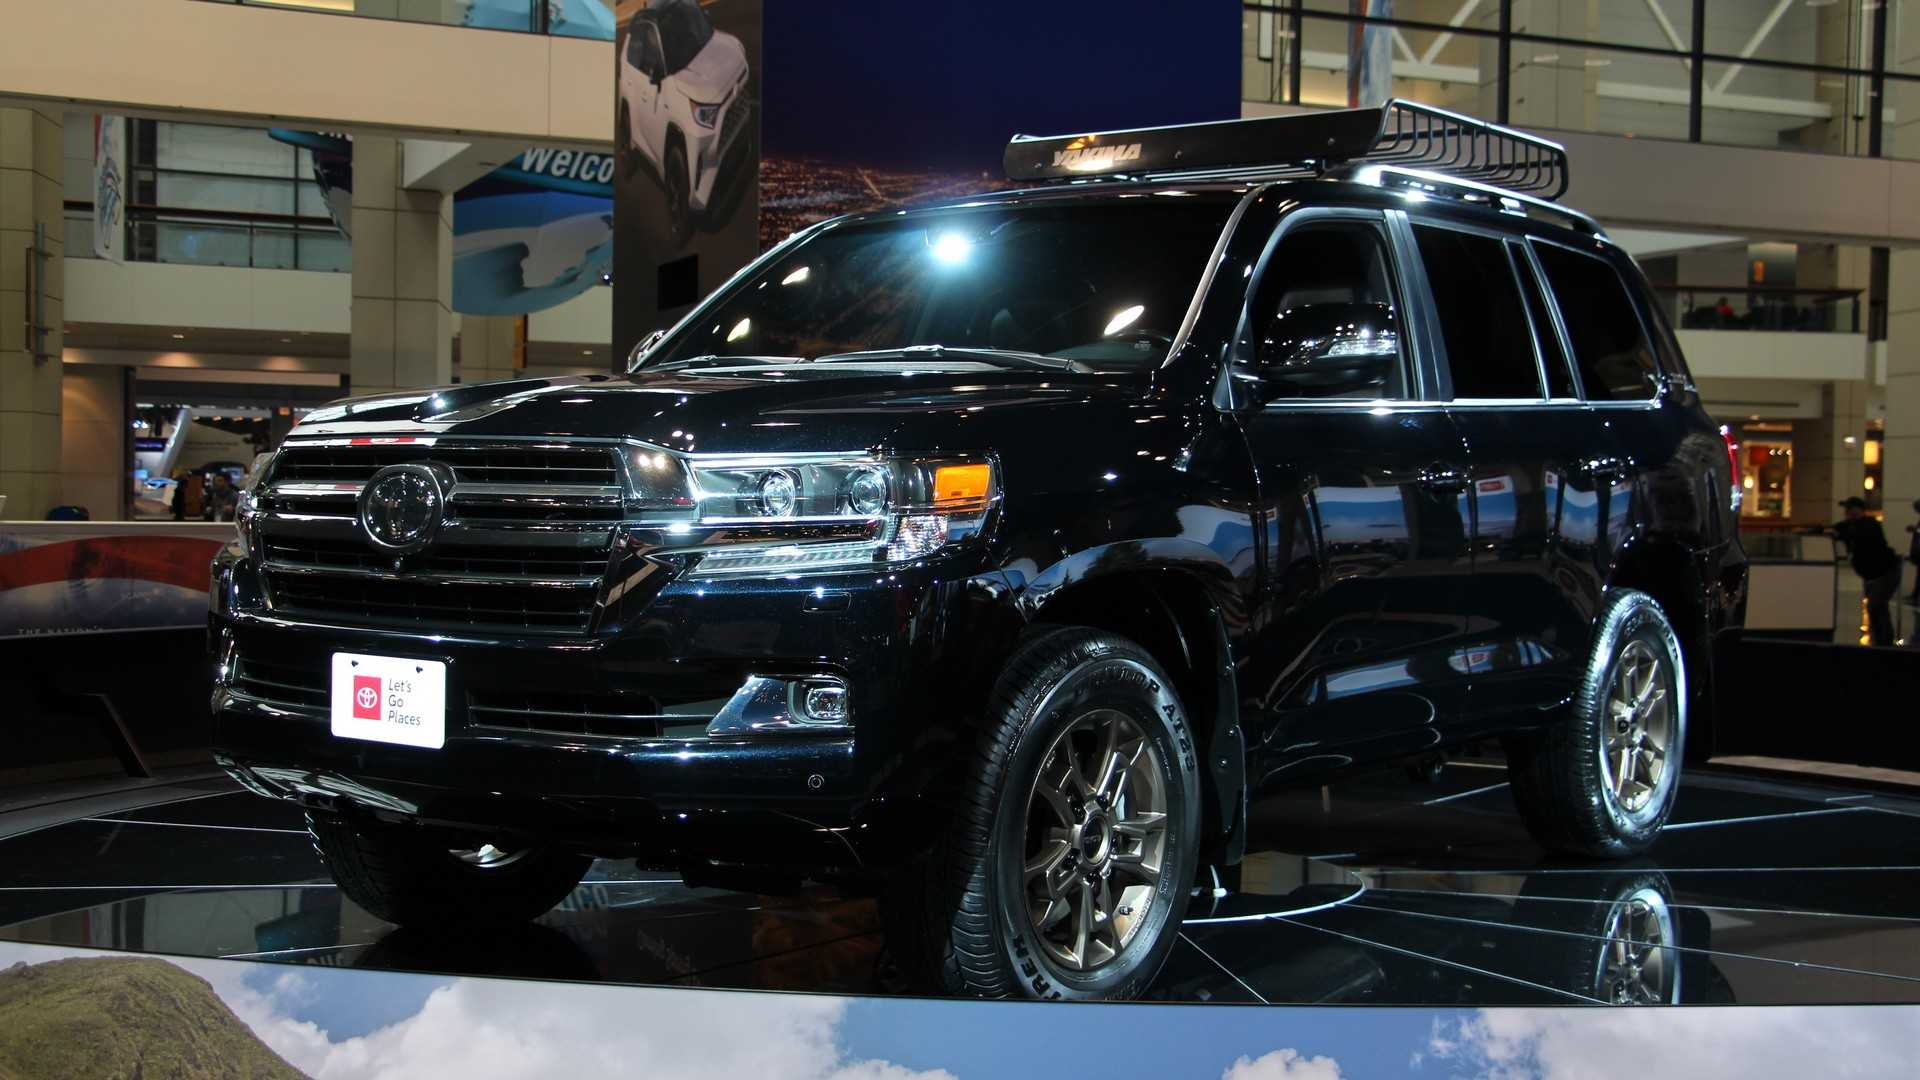 49 All New Toyota Land Cruiser V8 2020 Price And Review